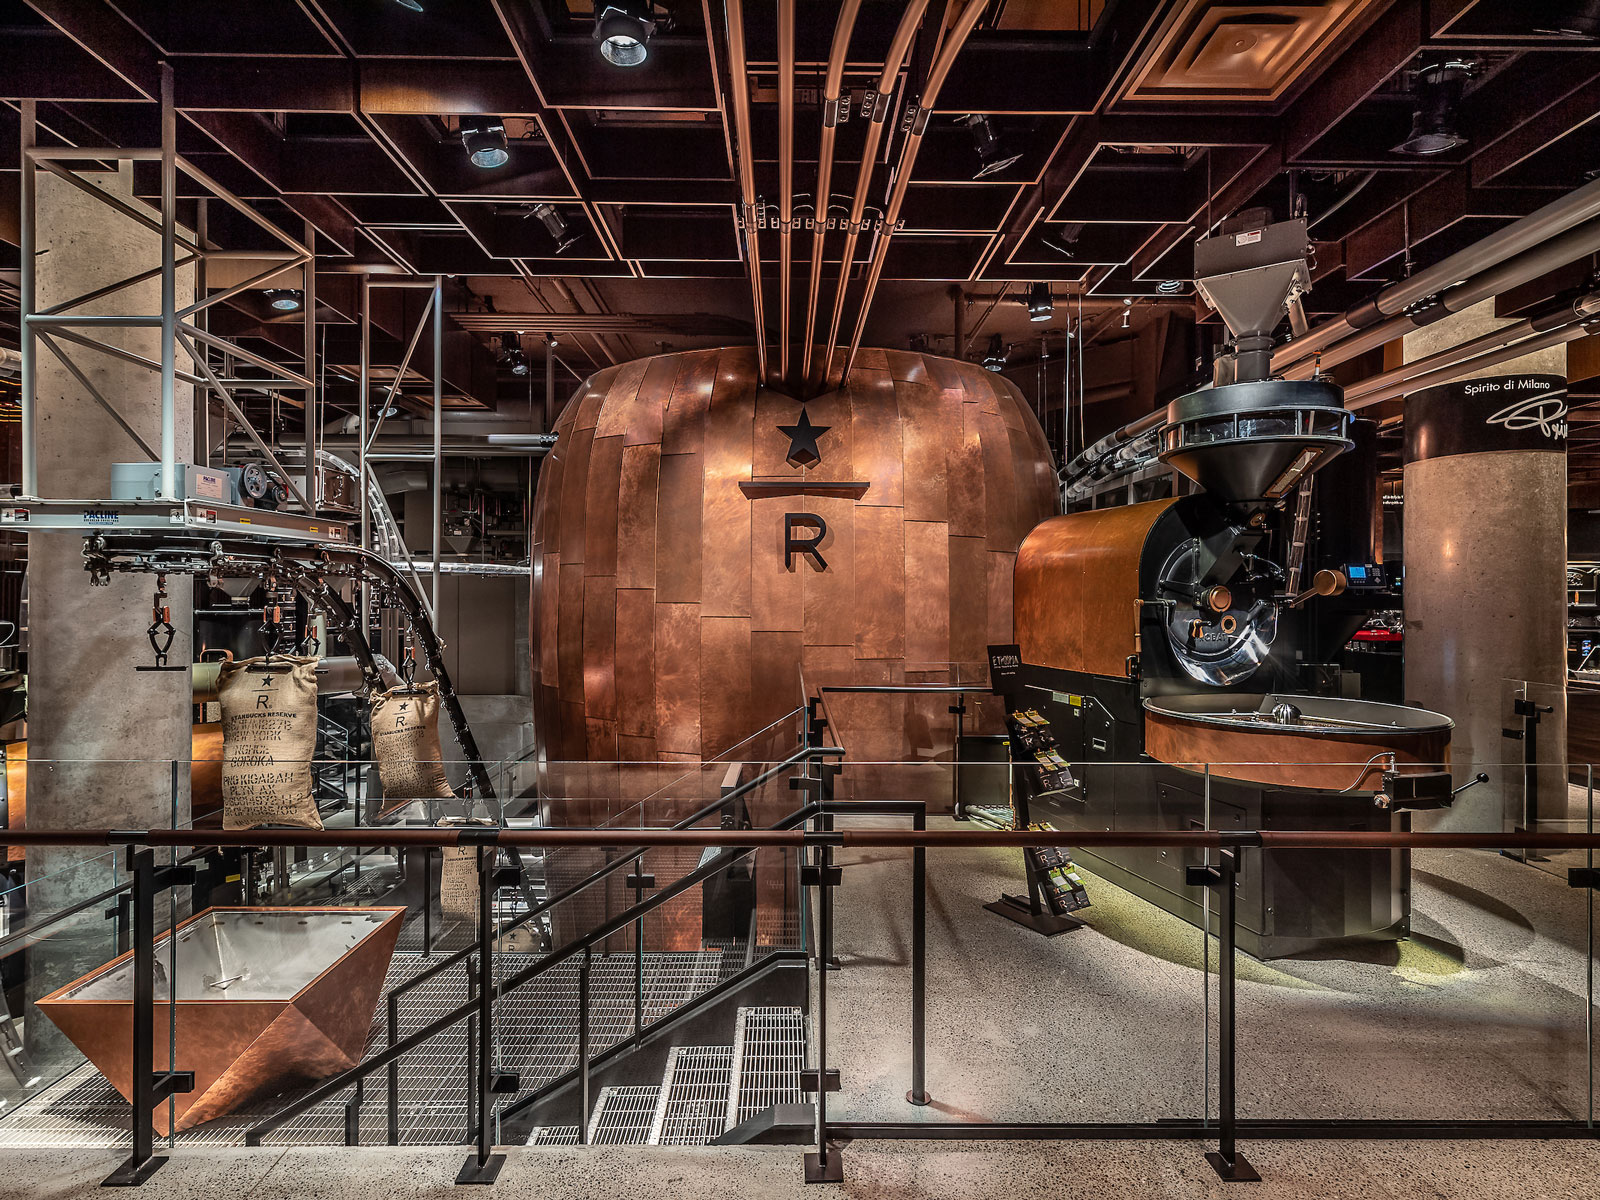 Roastery, Reserve Bar, Regular Starbucks: What's the Difference?